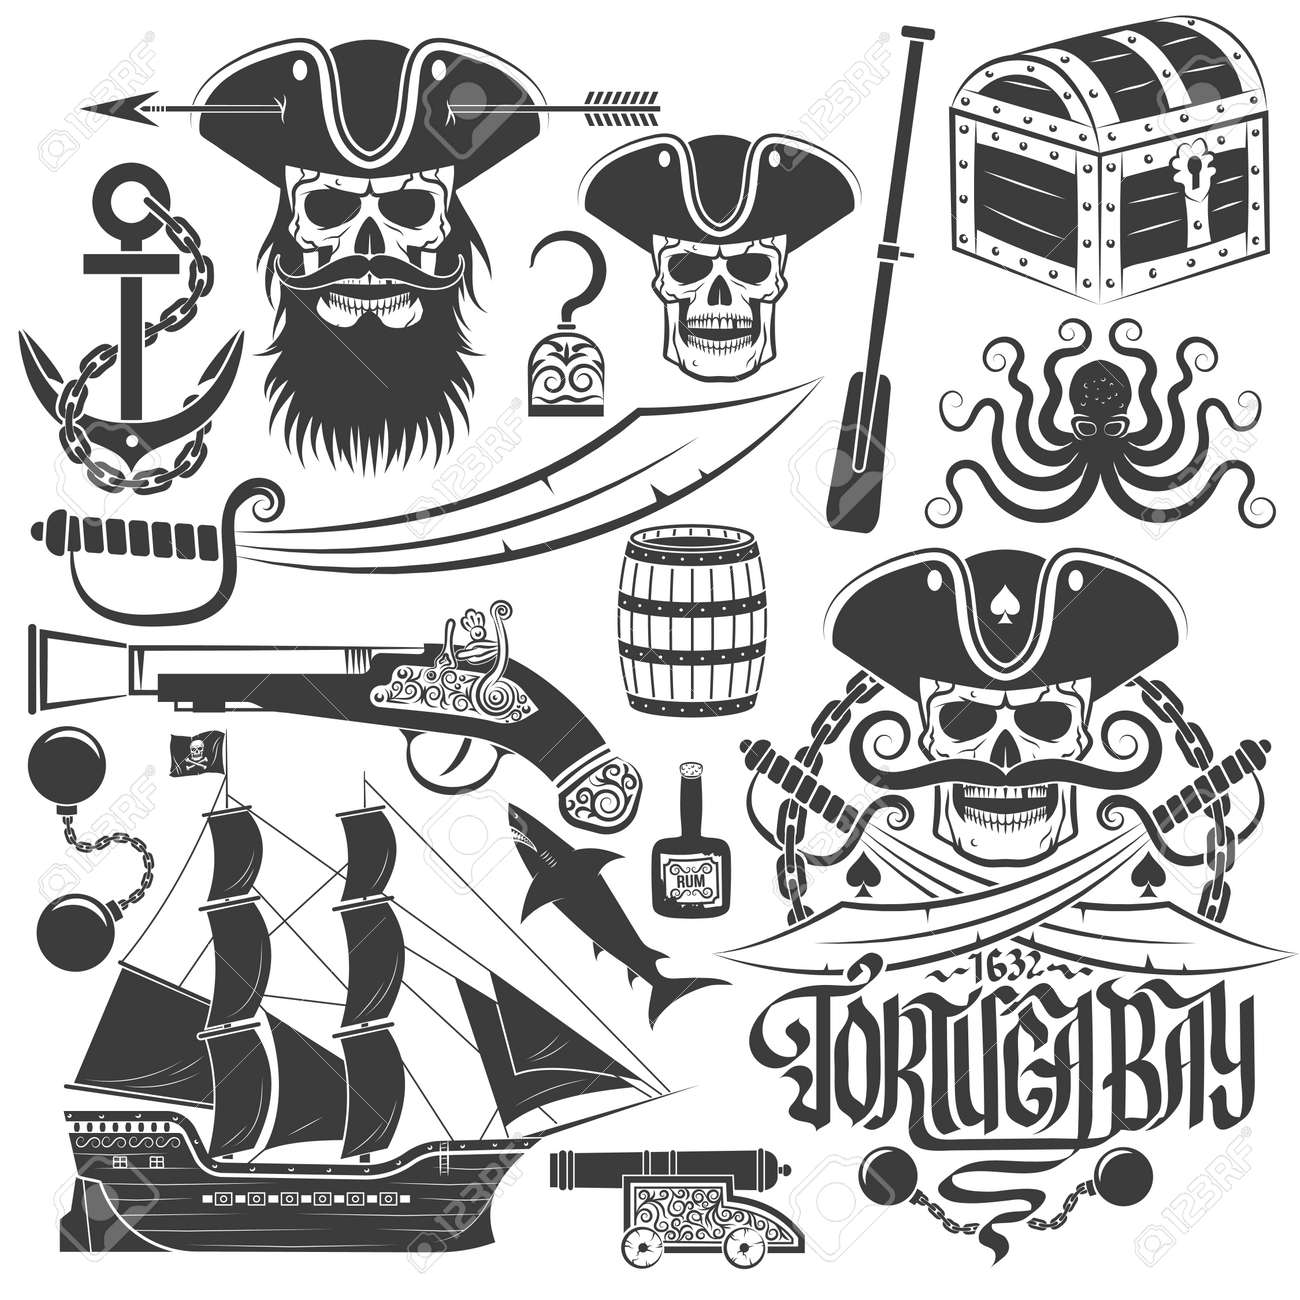 1 603 pirate logo stock vector illustration and royalty free